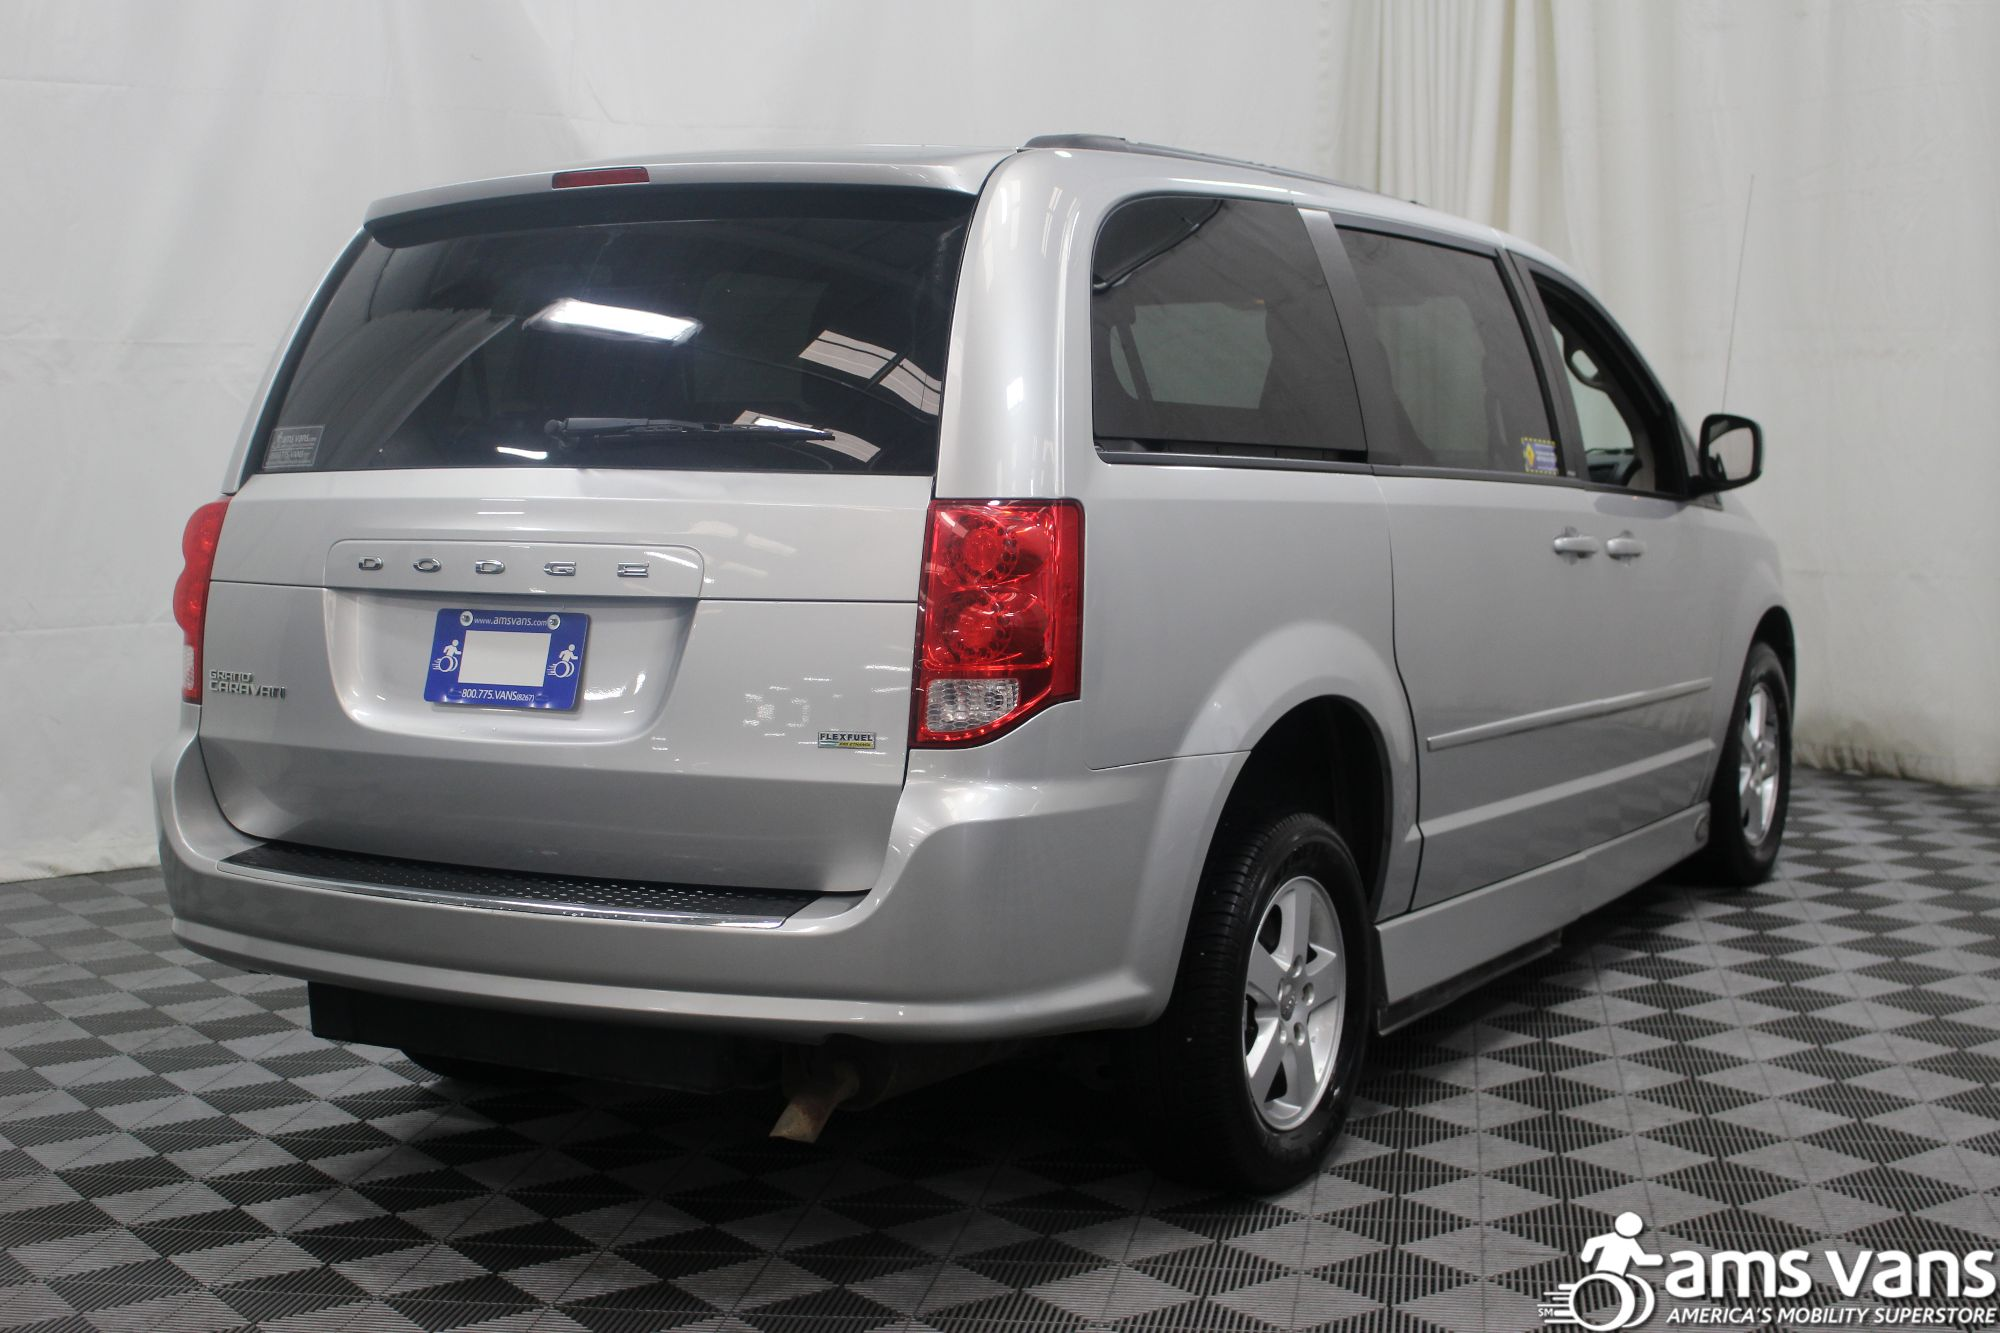 2011 Dodge Grand Caravan Mainstreet Wheelchair Van For Sale #9